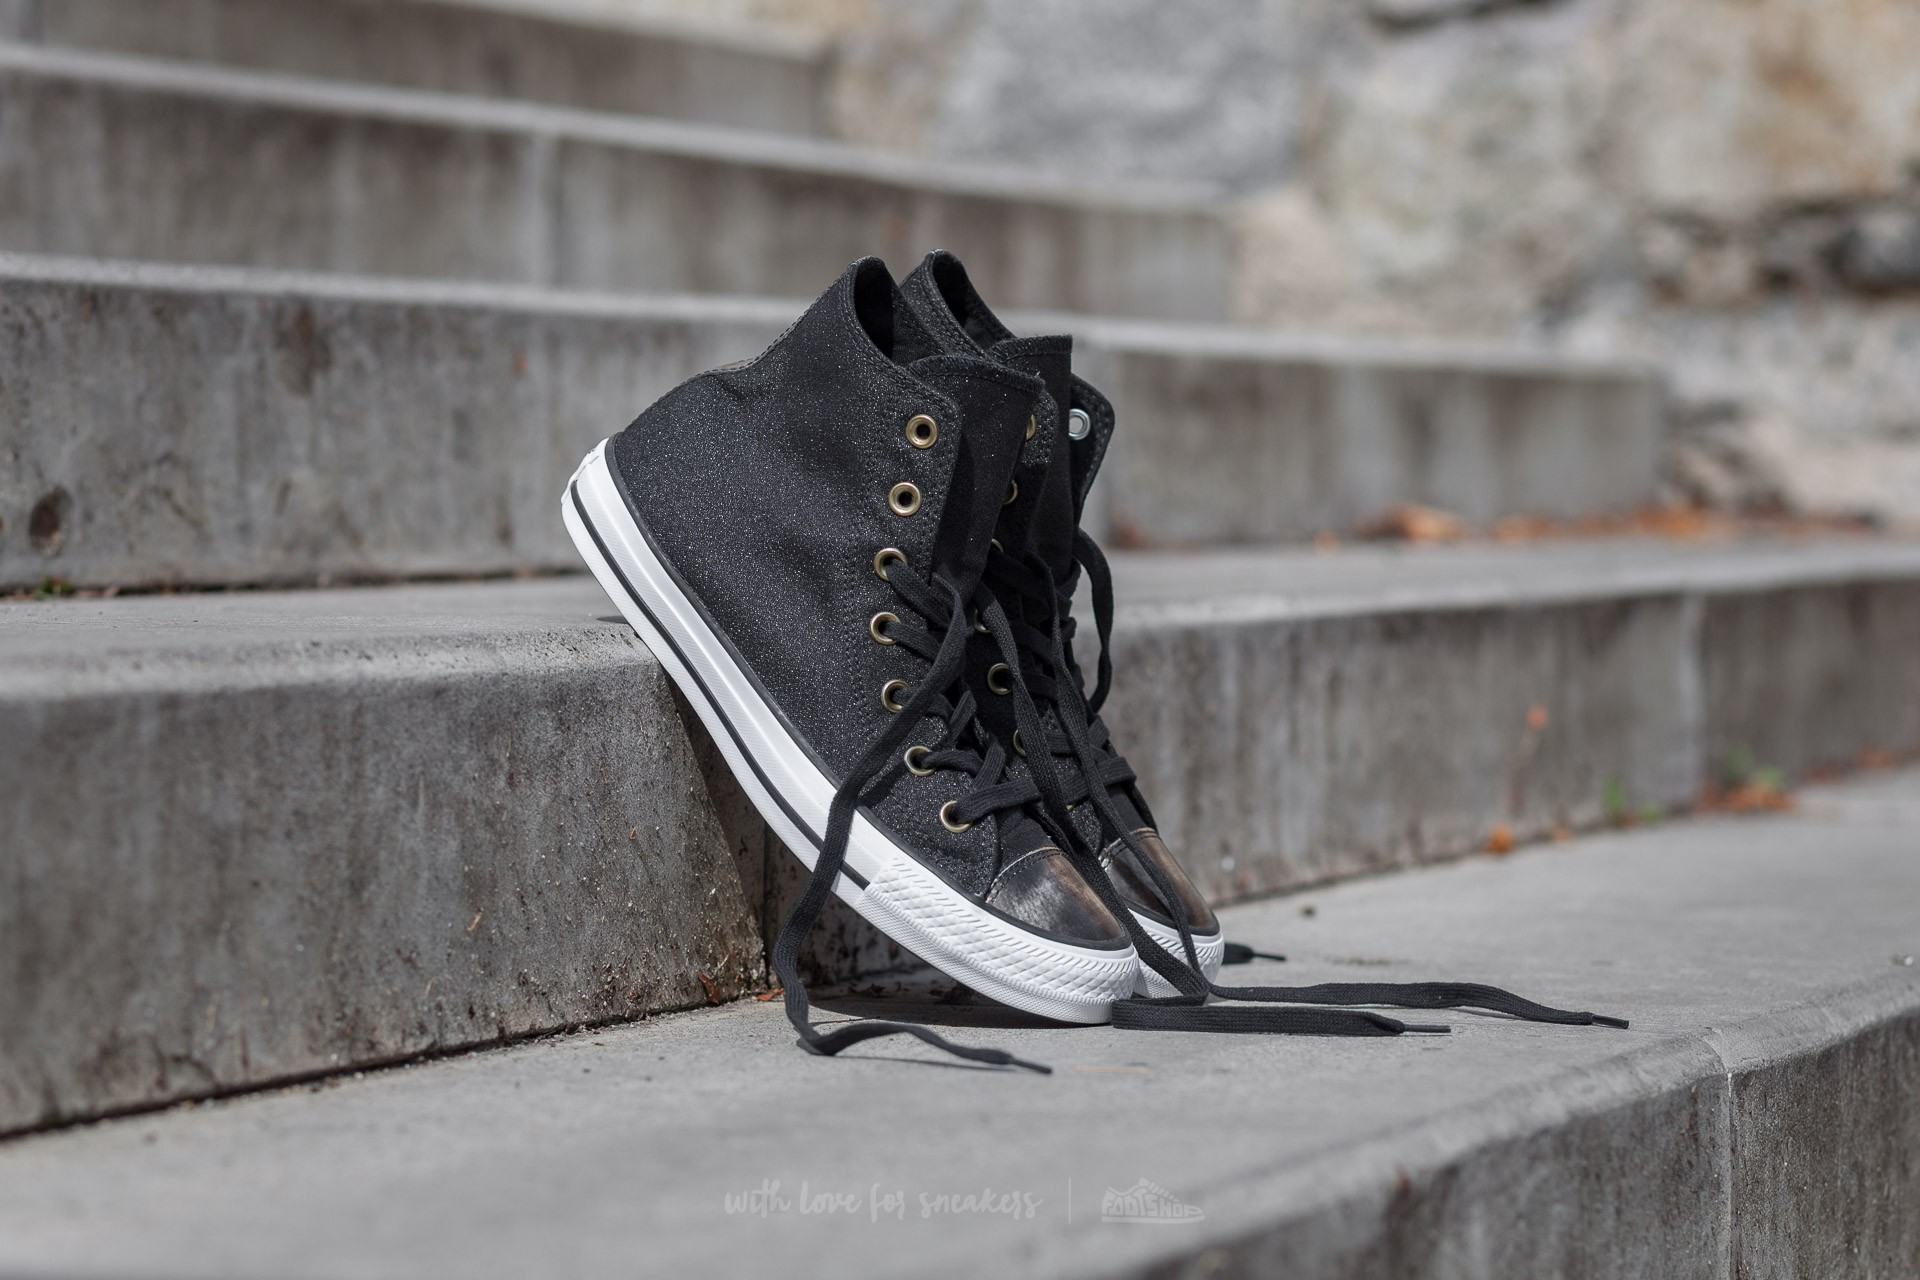 Converse Chuck Taylor All Star Brush Off Leather Toe Cap Black  Light Gold   Black 3950cd4d978